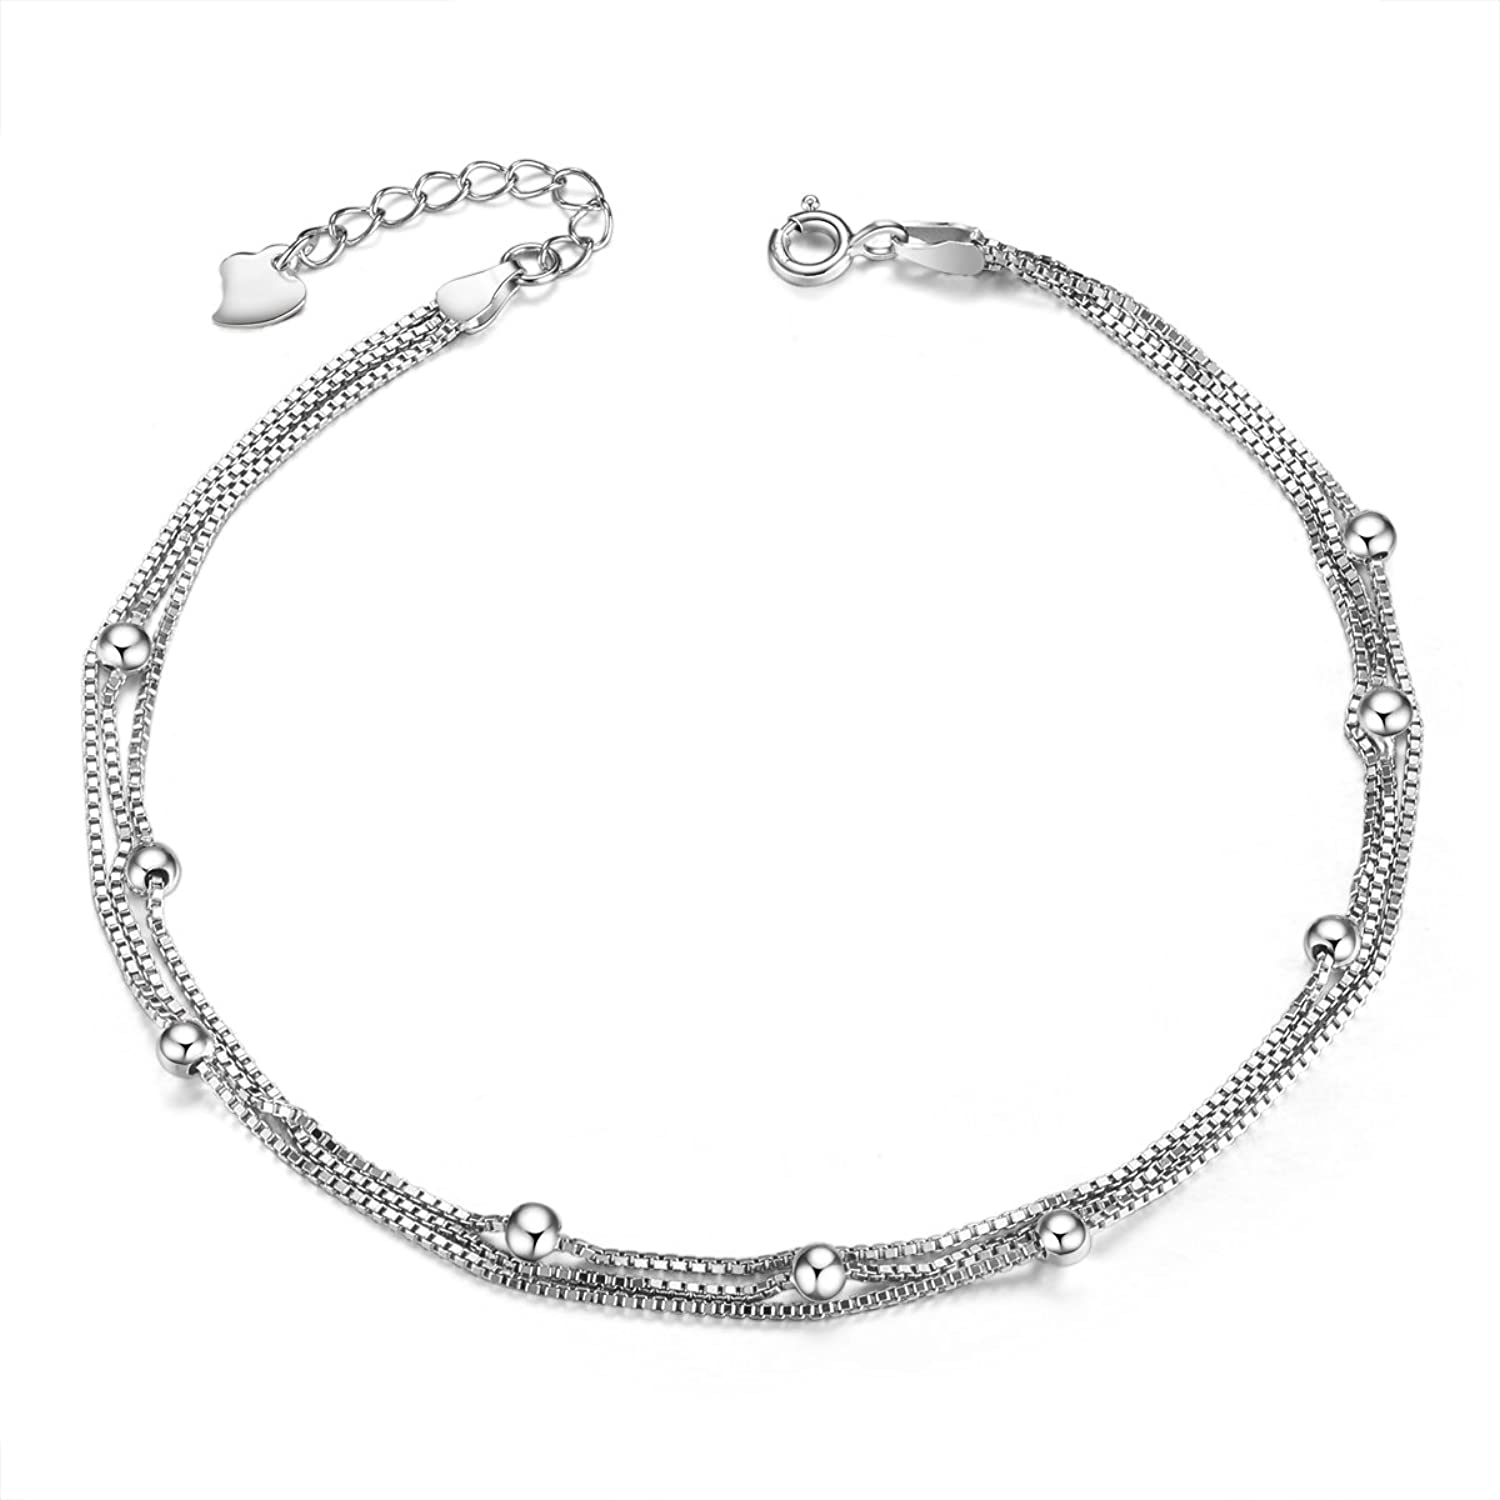 triple uk anklet with sterling womens bracelets amazon for platinum tiny beads anklets bracelet layered s women sweetiee chain silver ankle b co